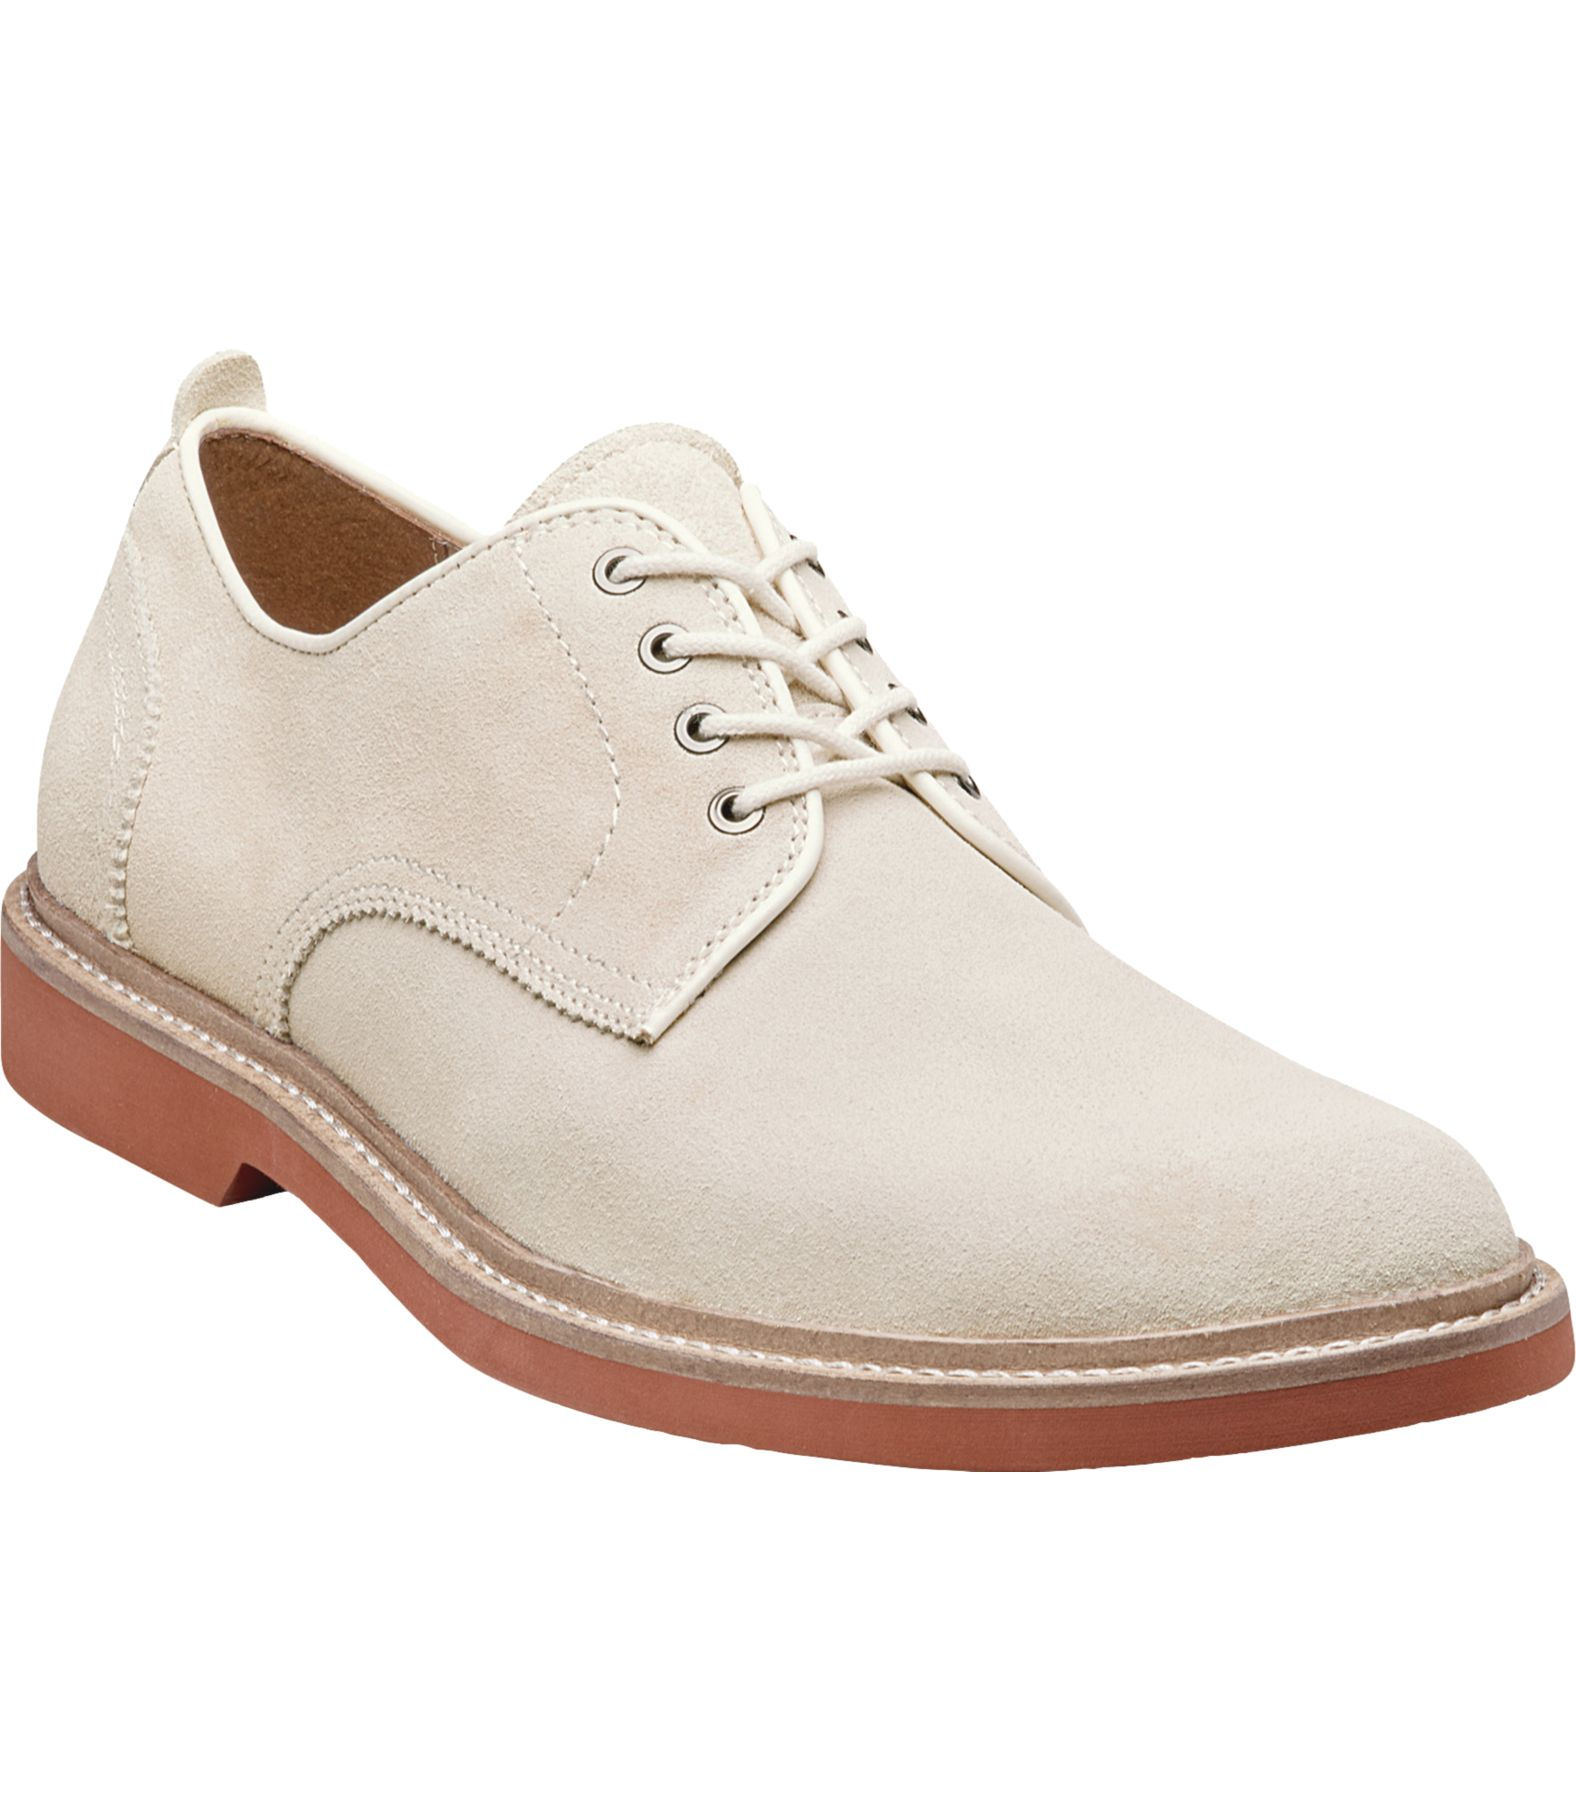 Mens 1920s Shoes History and Buying Guide Bucktown Oxford by Florsheim Mens Shoes -  $115.00 AT vintagedancer.com